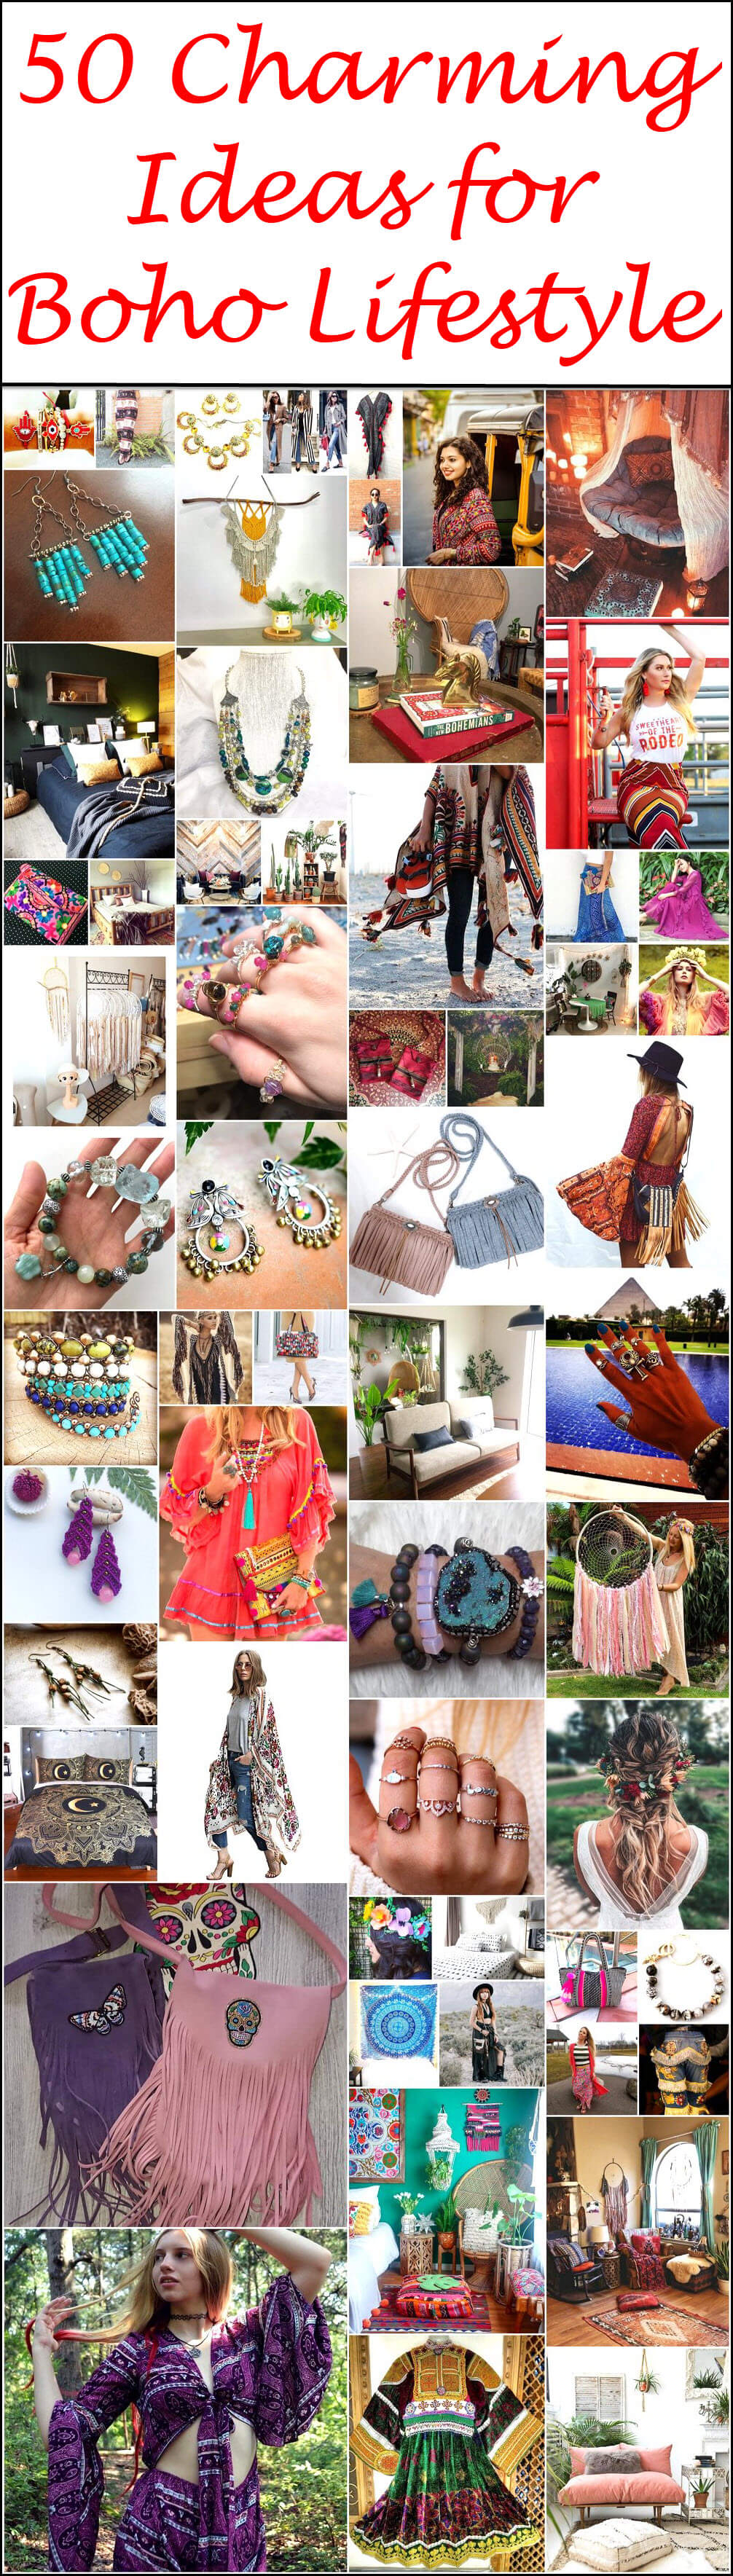 50 Charming Ideas for Boho Lifestyle